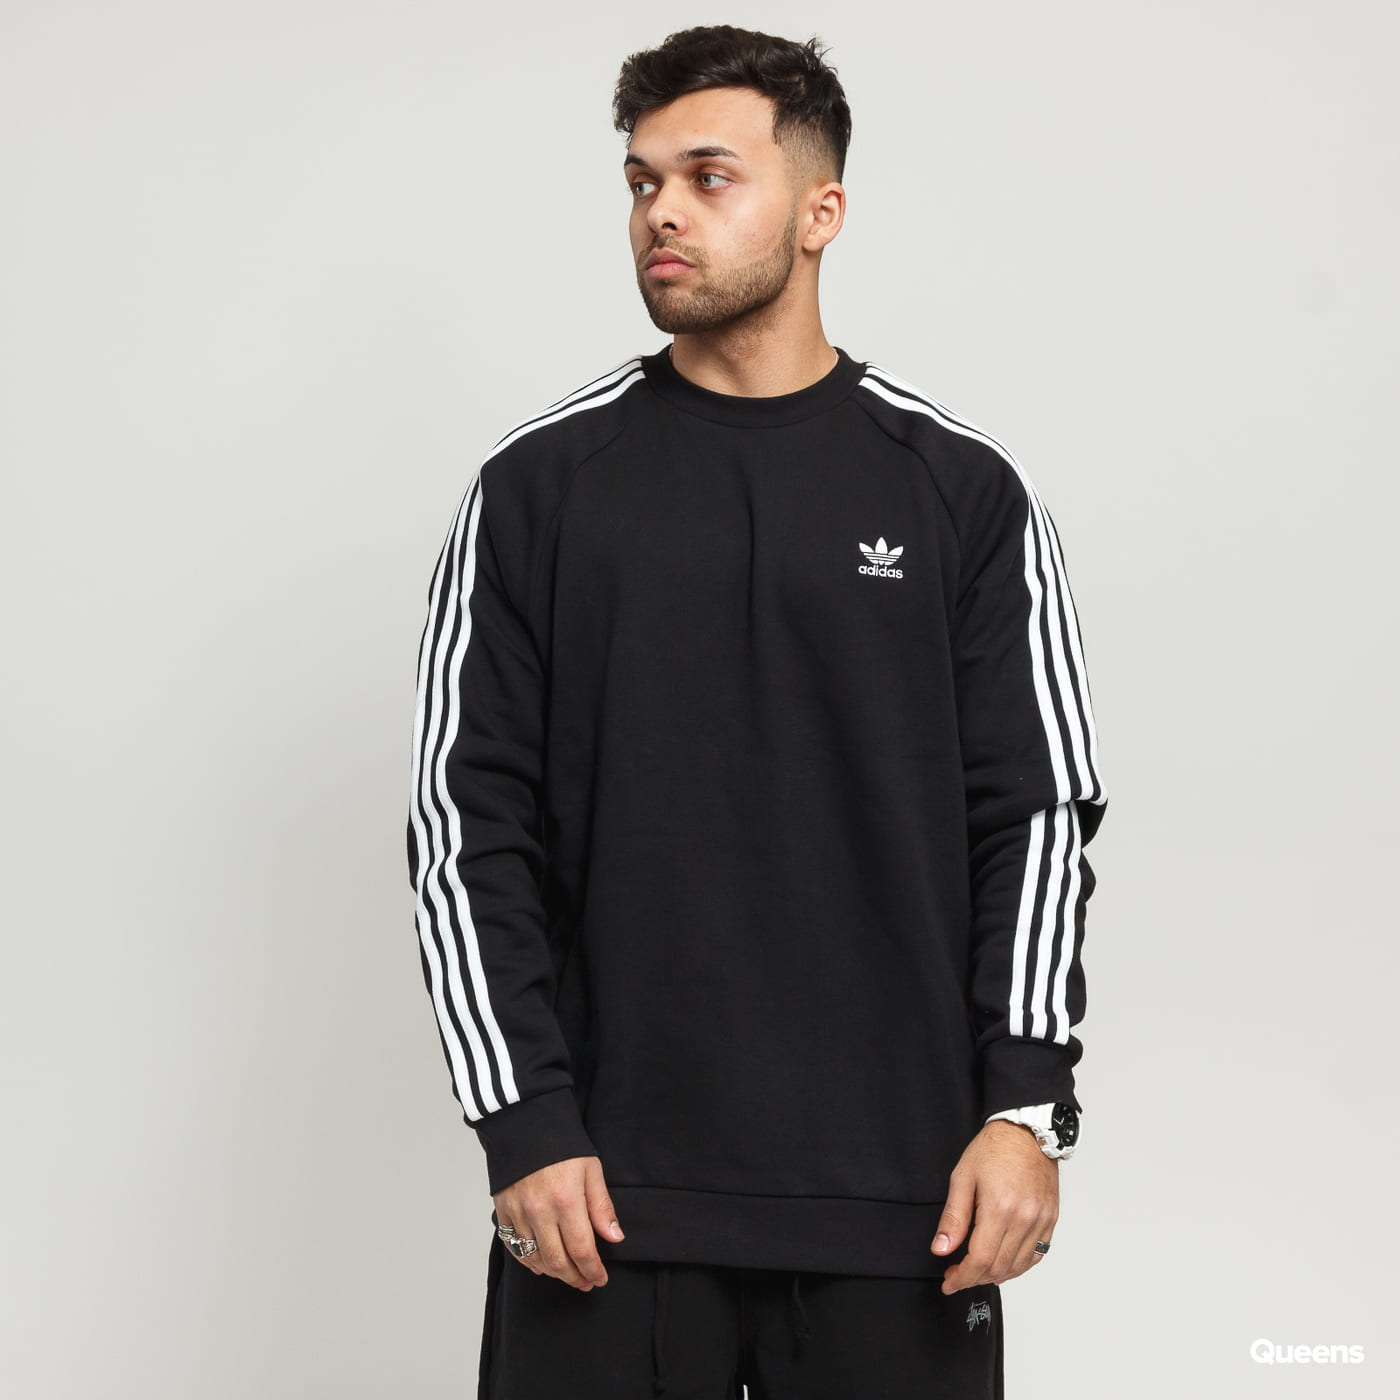 DV1555 MEN/'S SWEATSHIRT SNEAKERS ADIDAS ORIGINALS 3-STRIPES